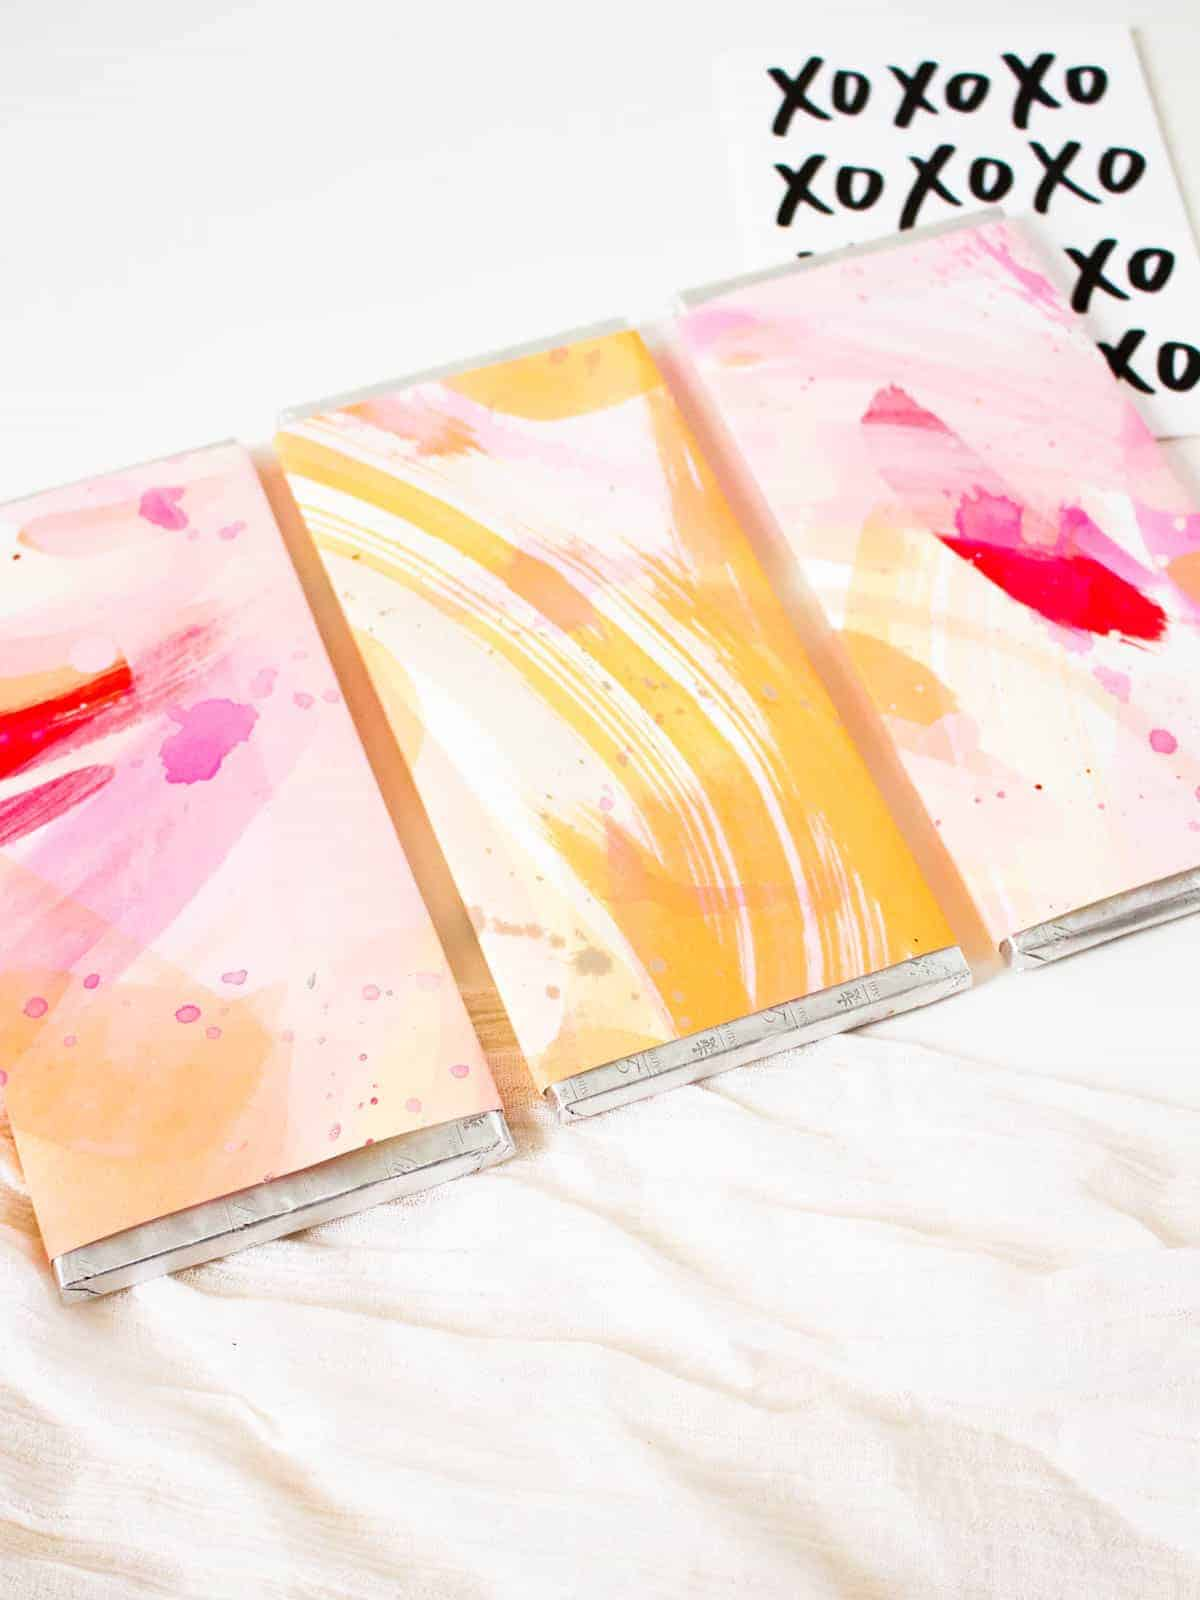 DIY Painted Chocolate Bars for Valentine's Day | Fish & Bull